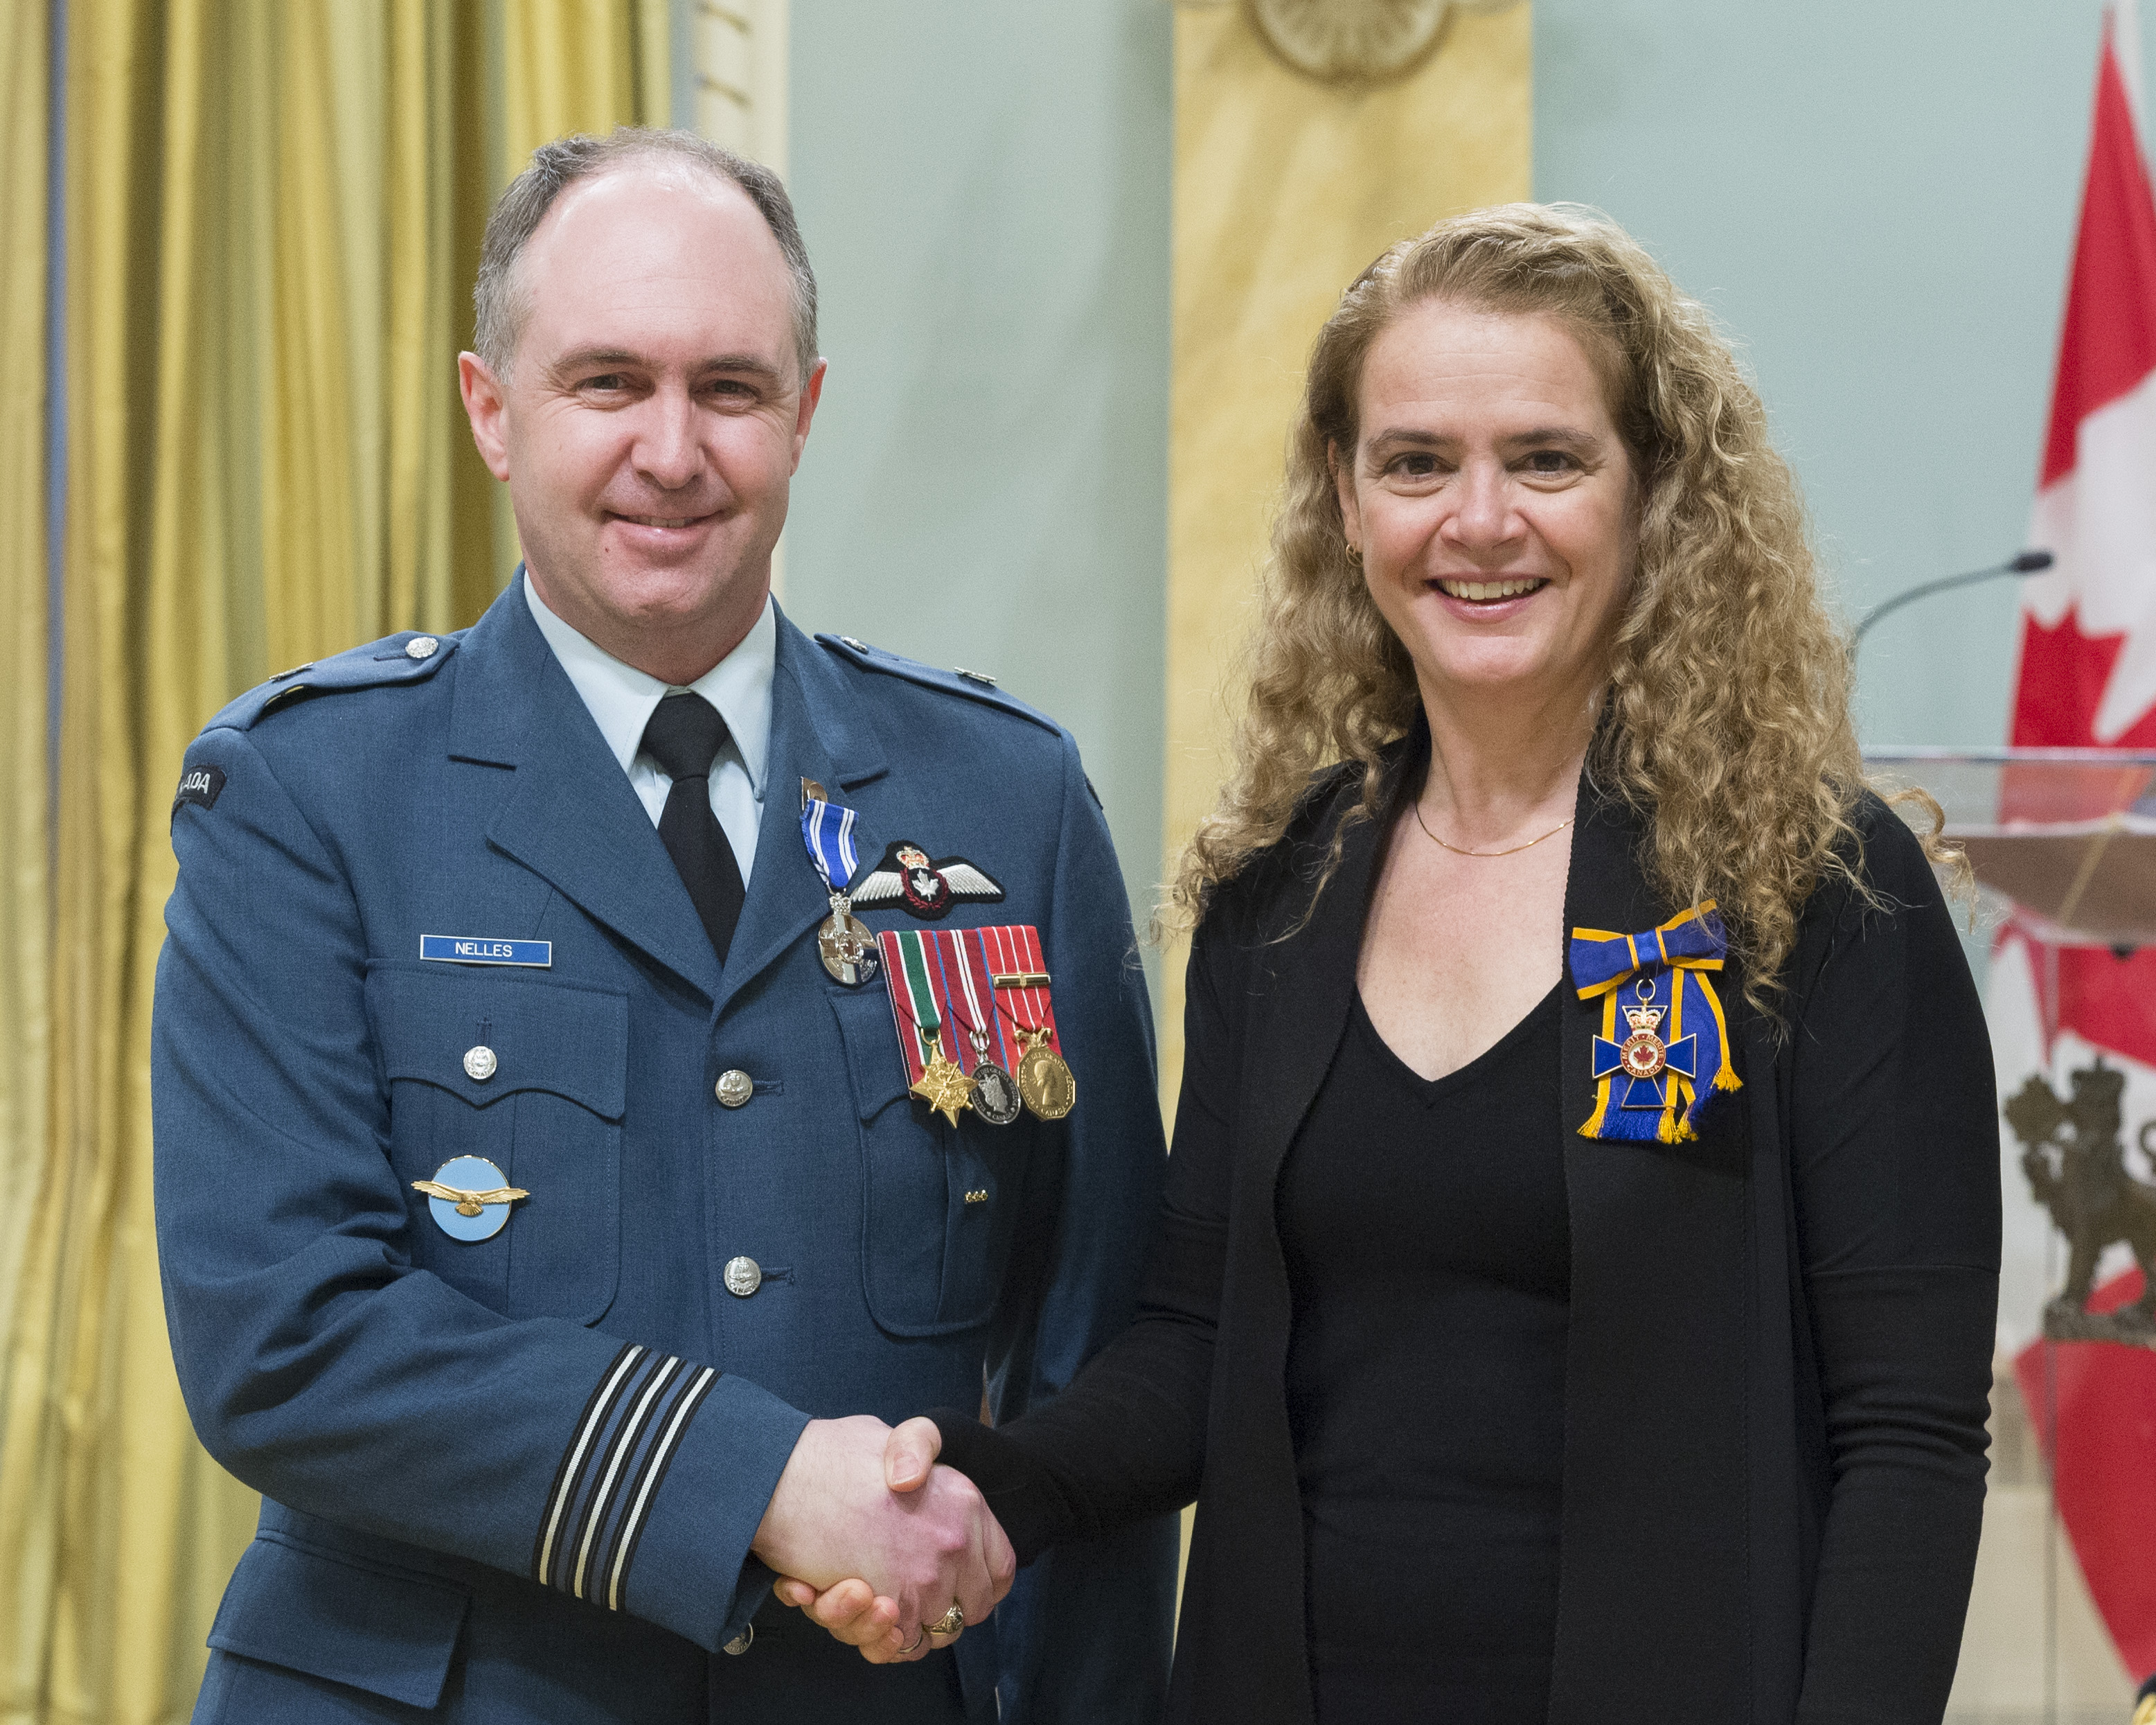 Lieutenant-Colonel Jonathan James Nelles receives the Meritorious Service Medal (Military Division) from Governor General and Commander-in-Chief of Canada Julie Payette on February 28, 2018. PHOTO: Sergeant Johanie Maheu, OSGG, GG05-2018-0066-041